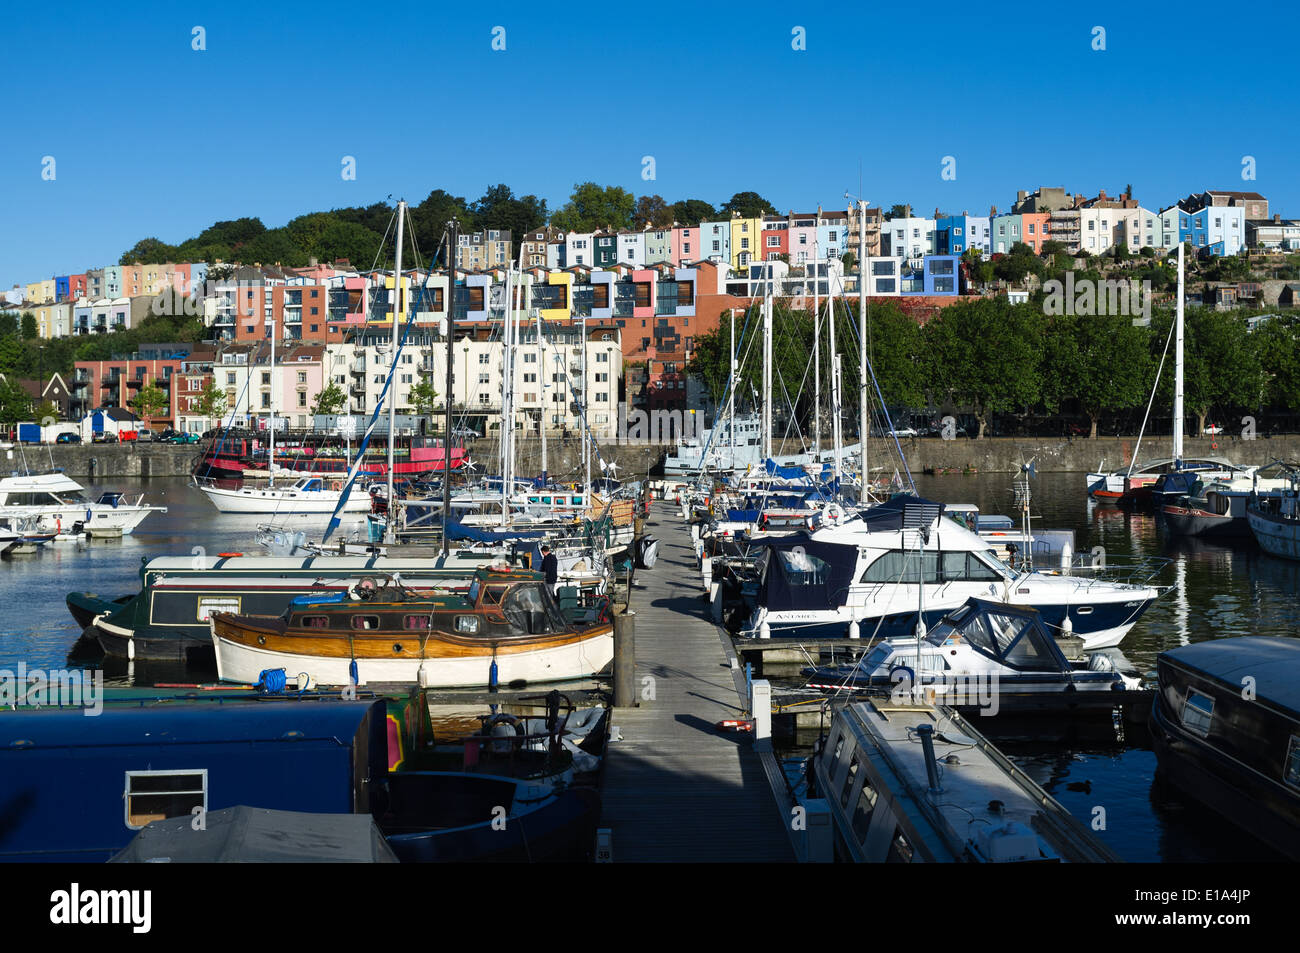 Boats moored in Bristol harbour, UK, with colourful Cliftonwood houses on the hillside in the background - Stock Image